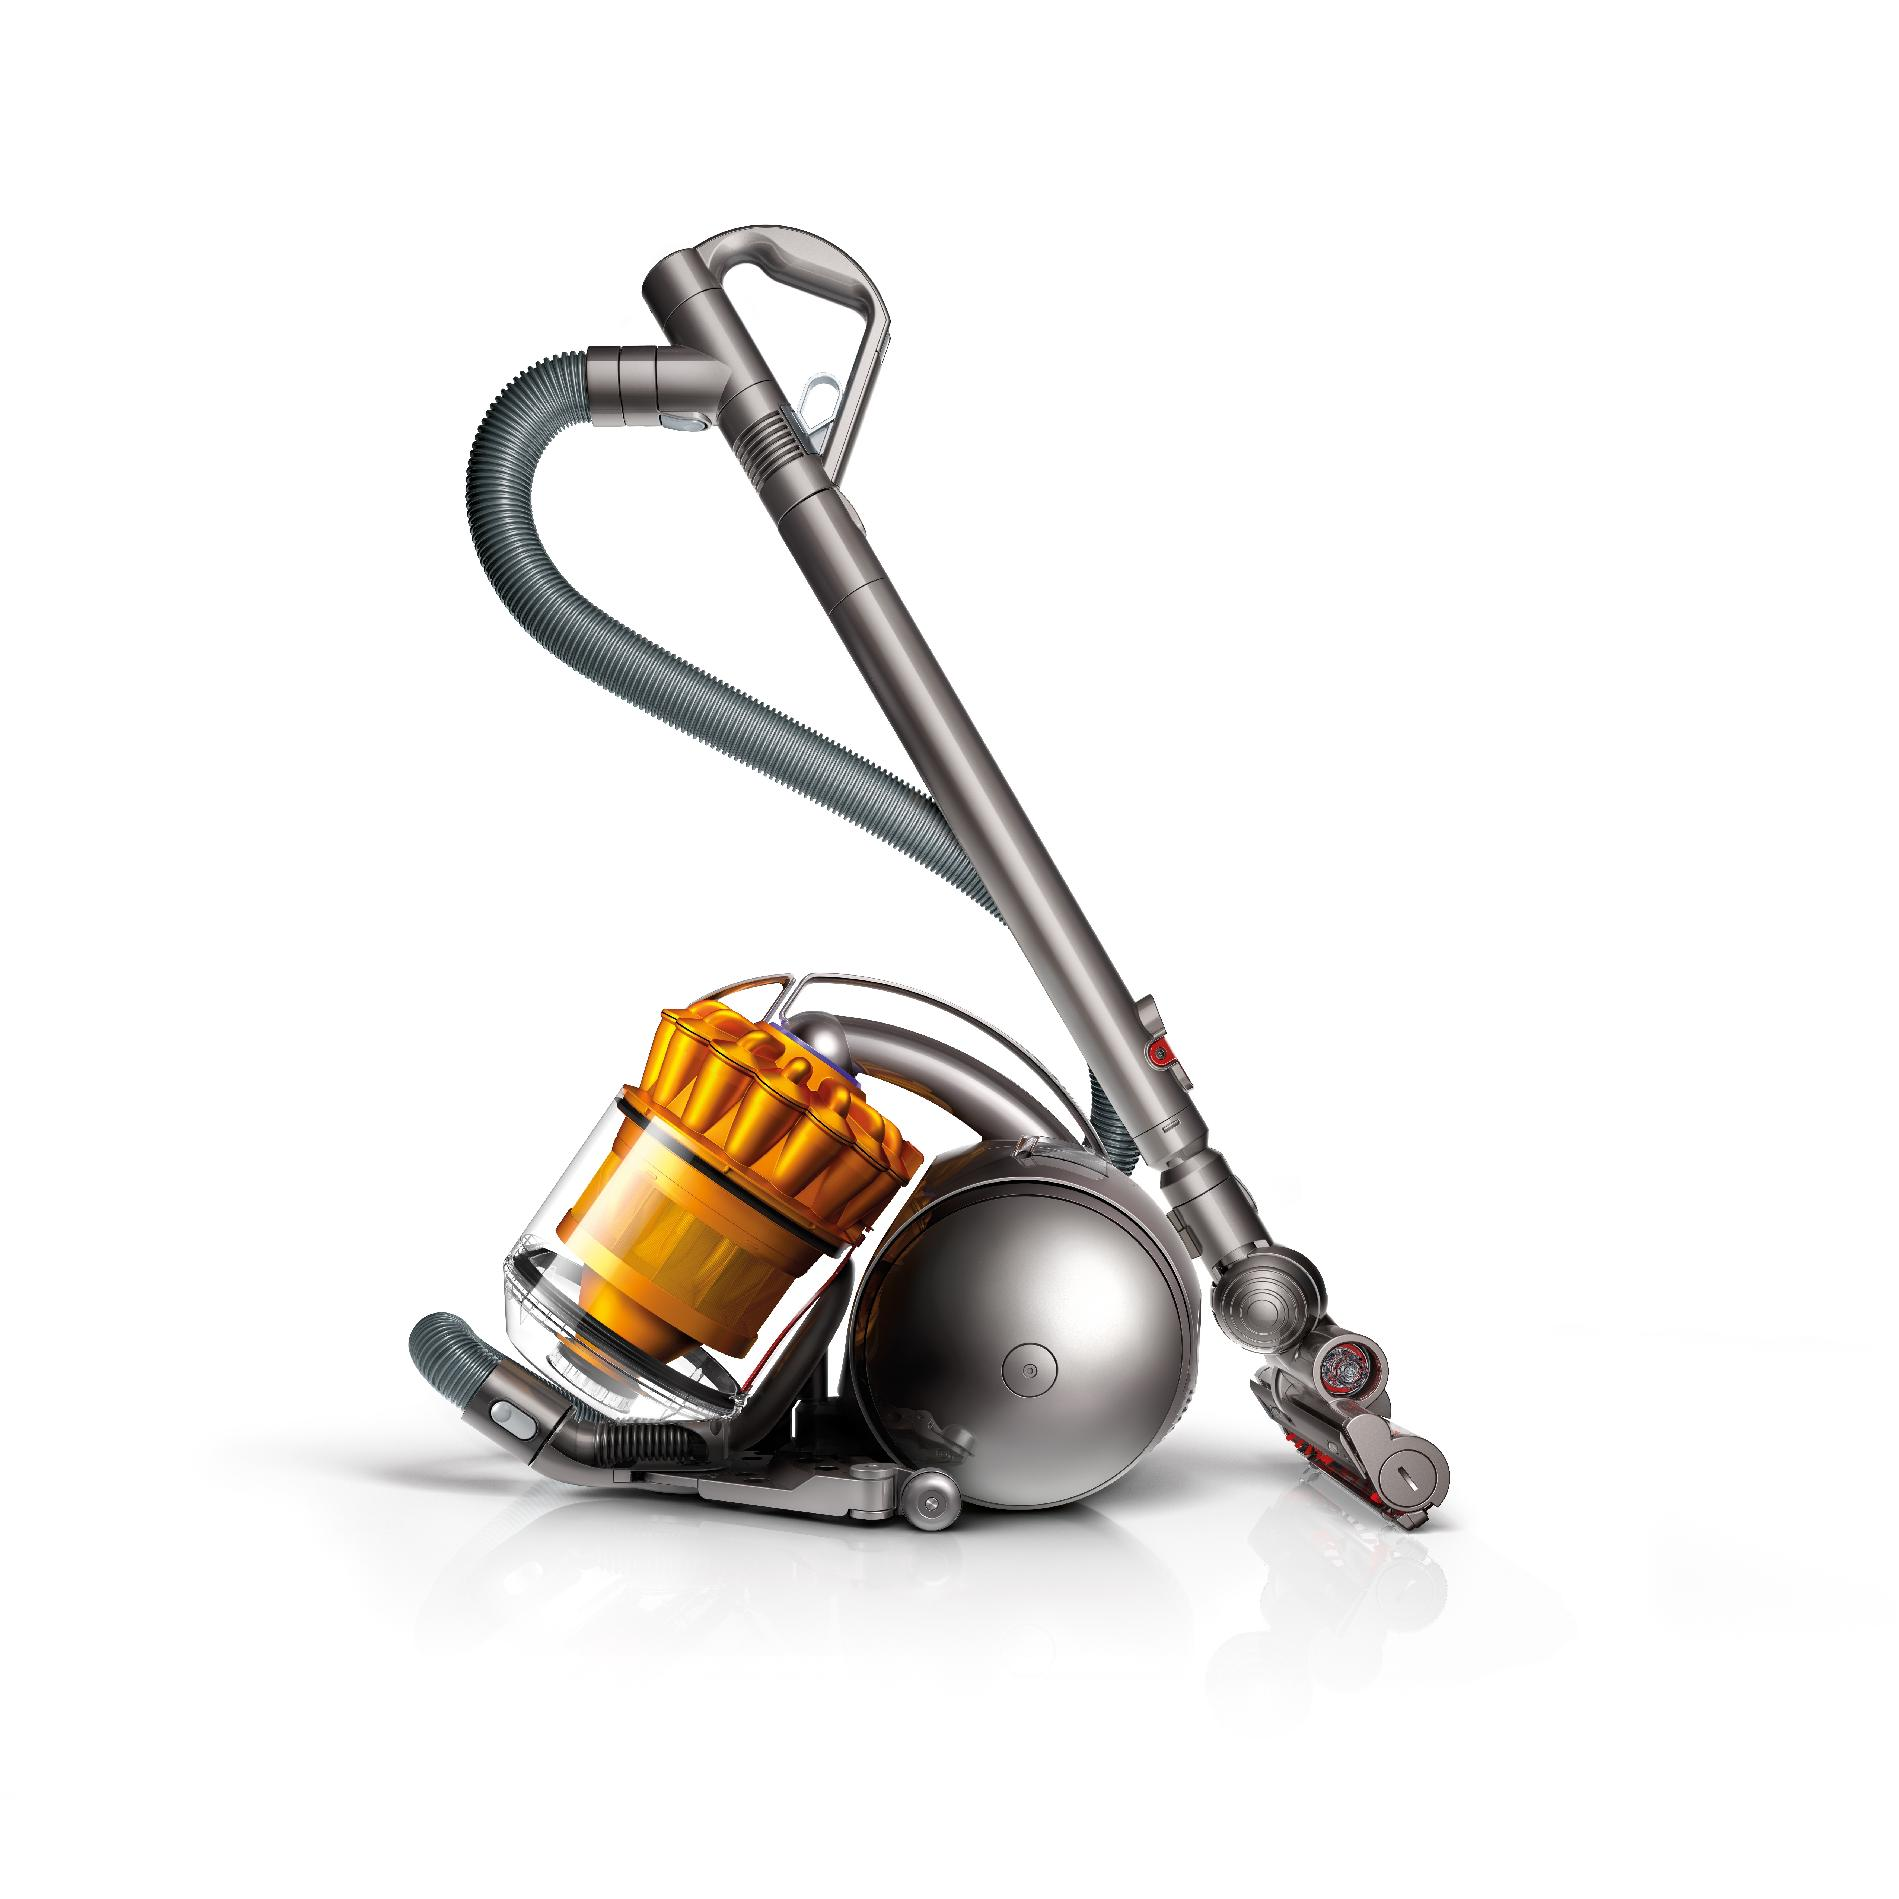 Dyson DC39 Multi-floor Canister Vacuum